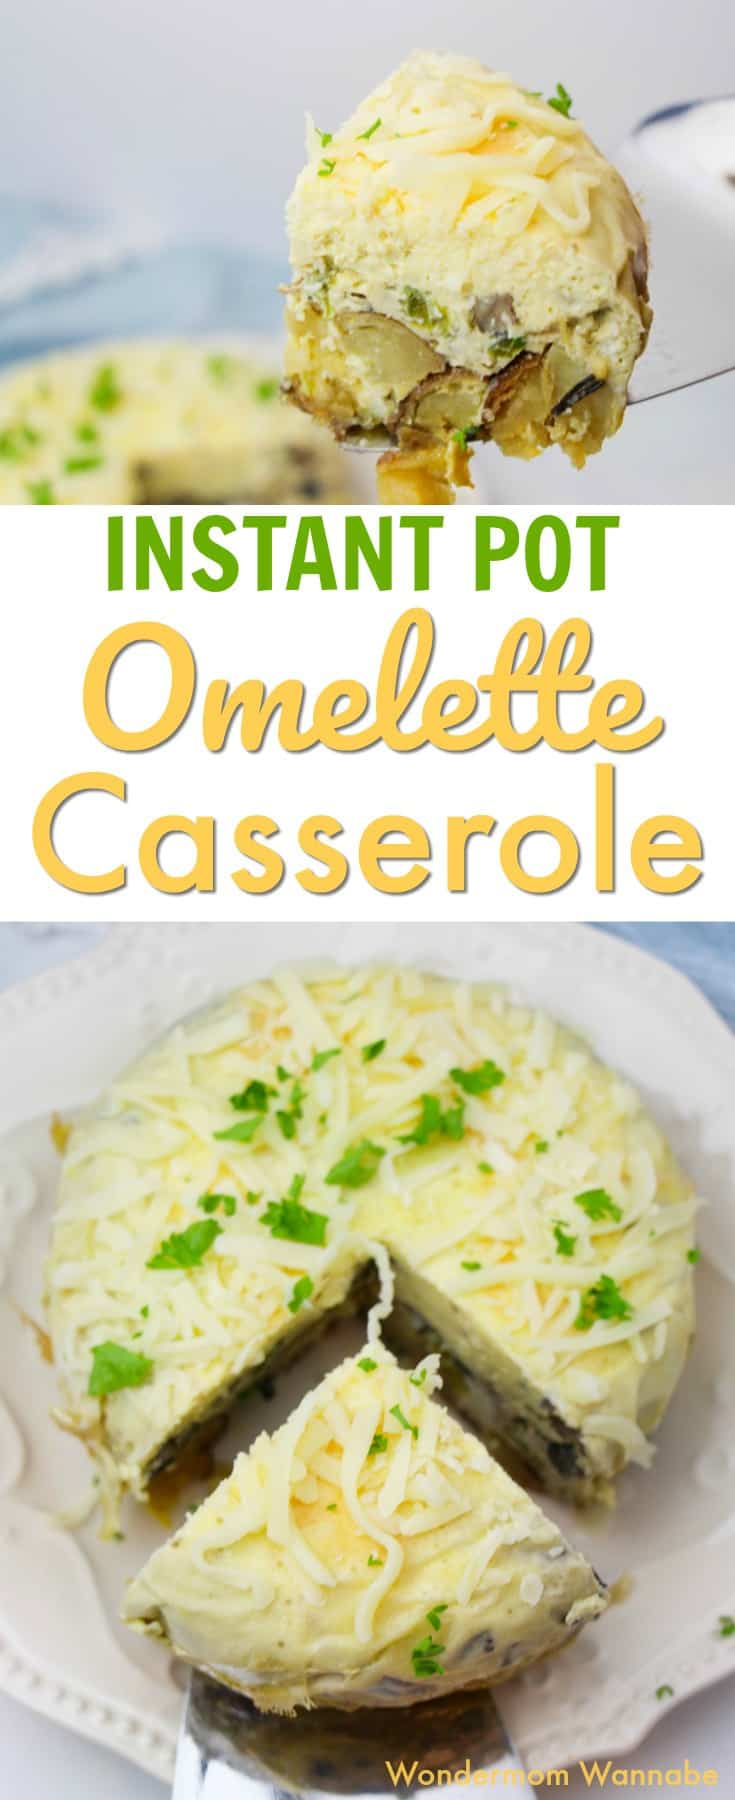 All the yummy flavors of an omelette are packed into this instant pot omelette casserole. So easy! #instantpotrecipes #pressurecooking #omelette #breakfast via @wondermomwannab